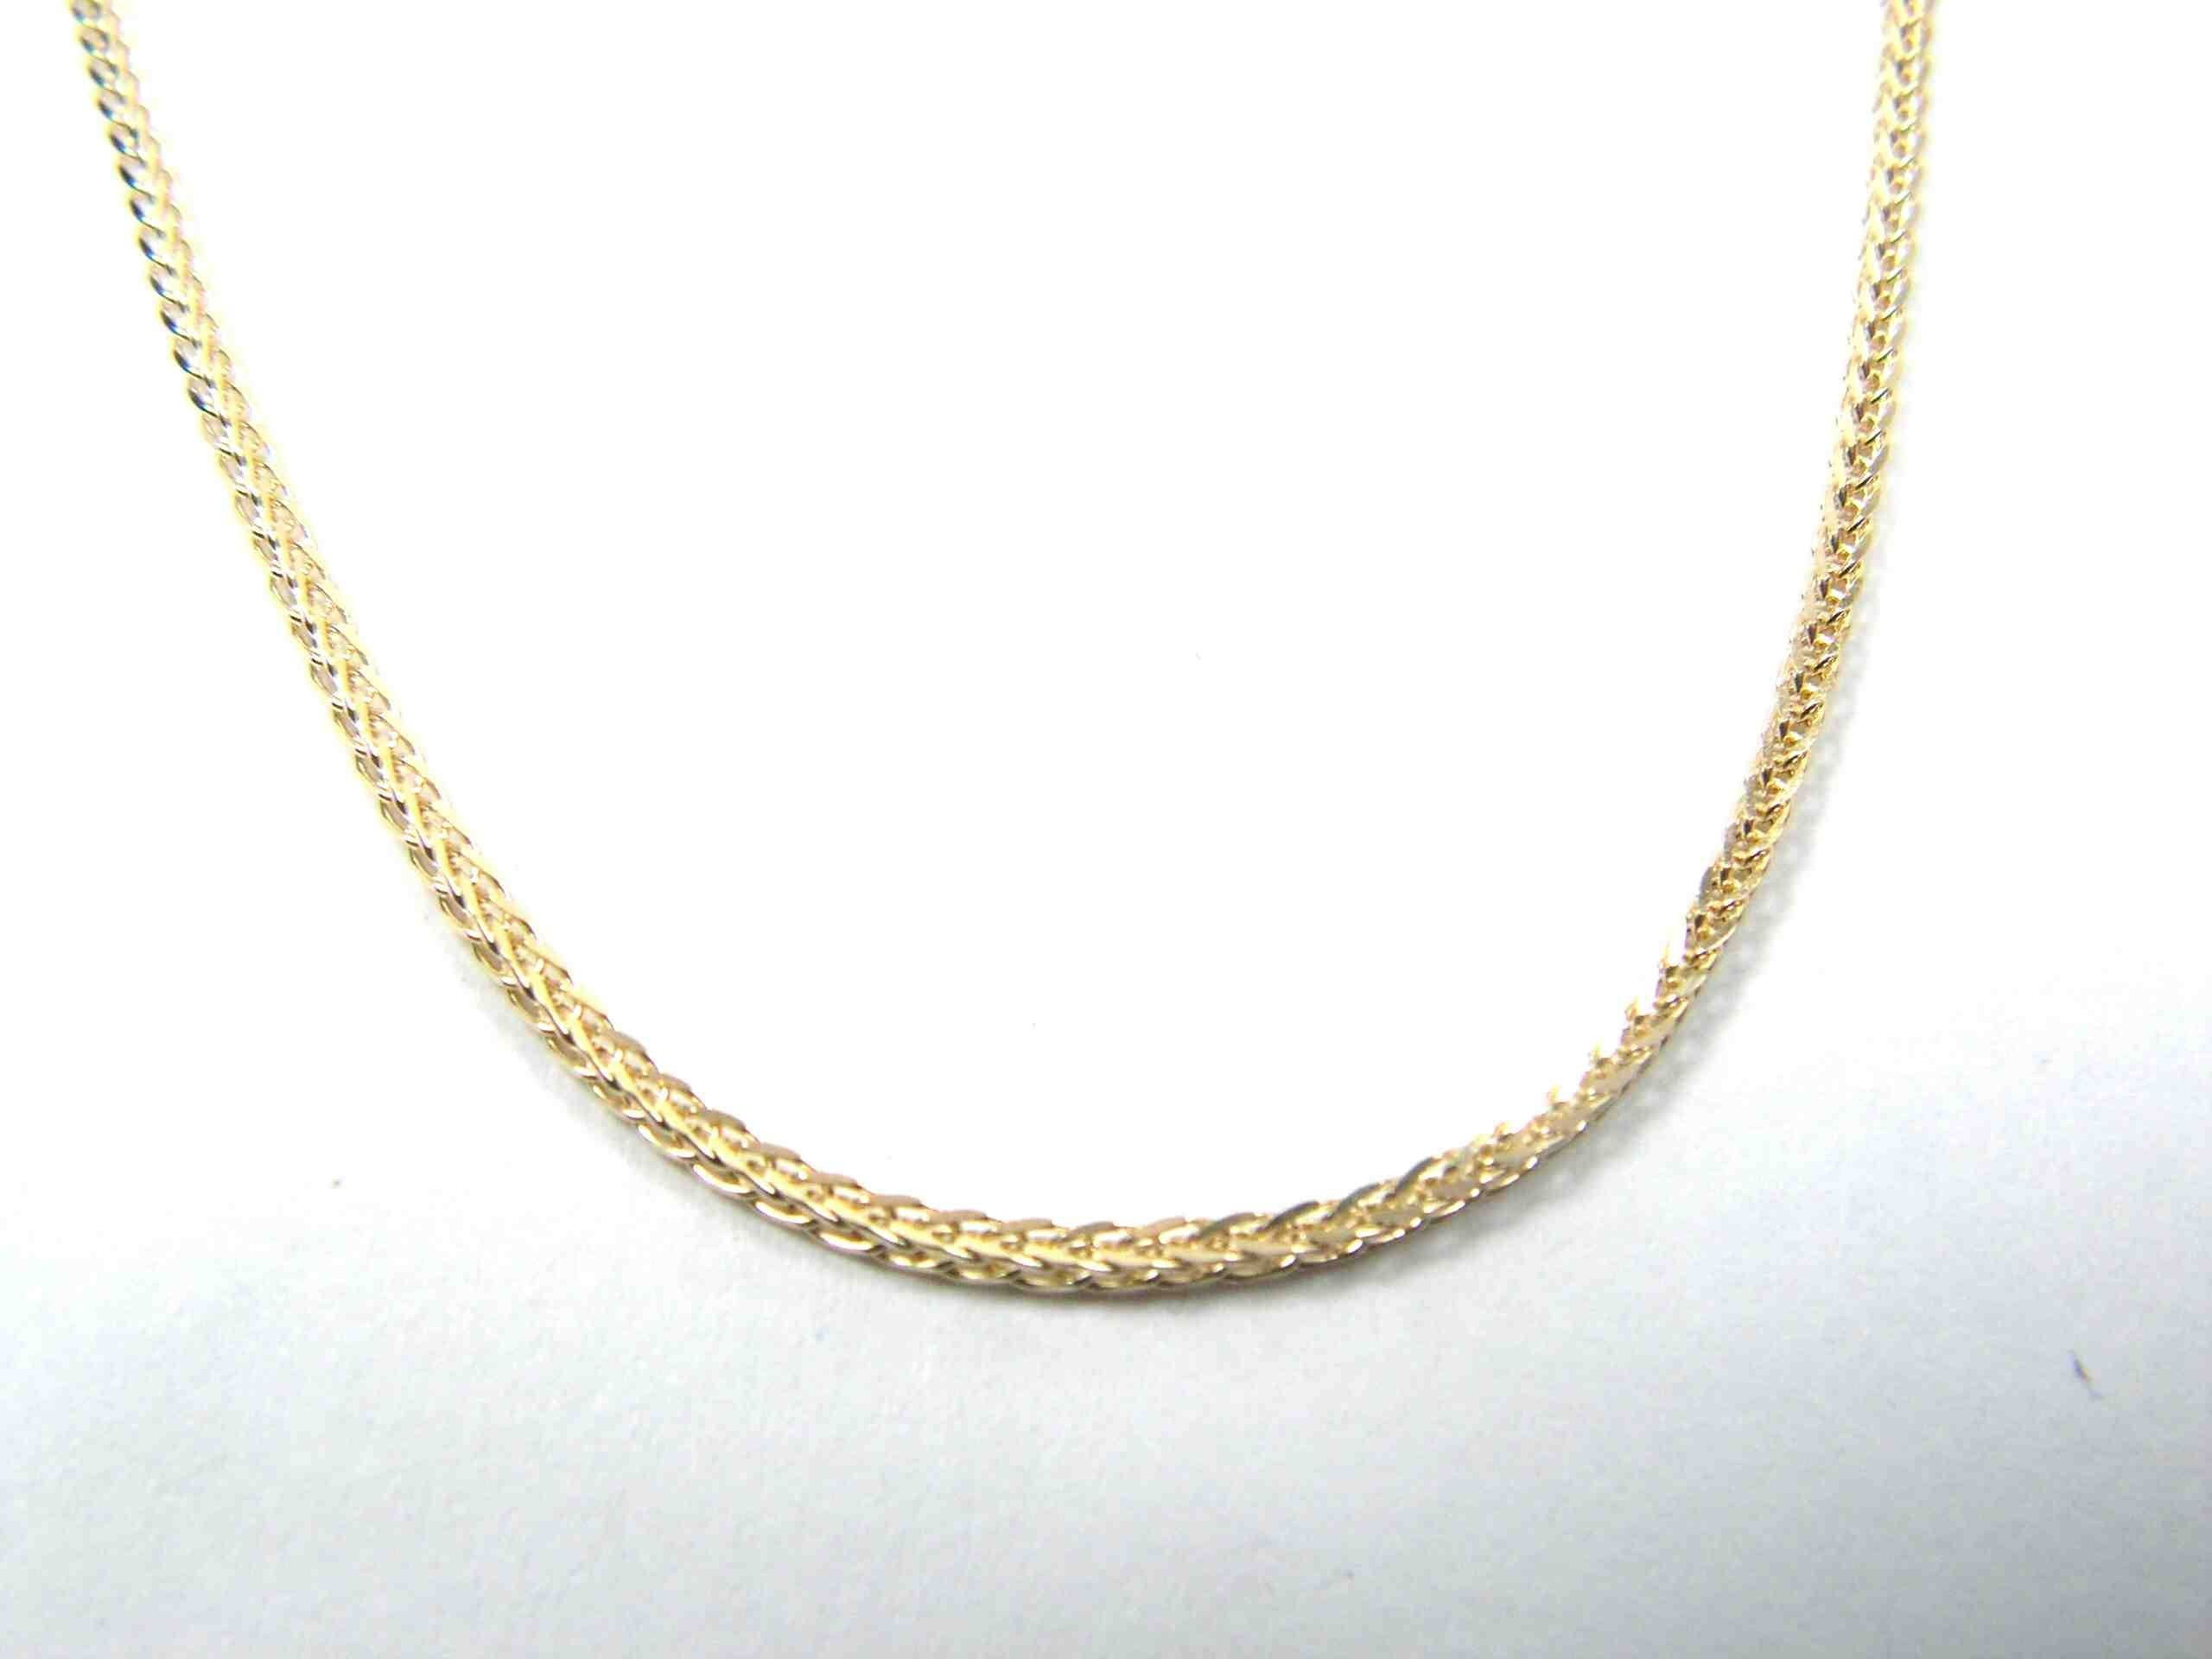 gold presidents products chains yellow necklace in link cuban diamond